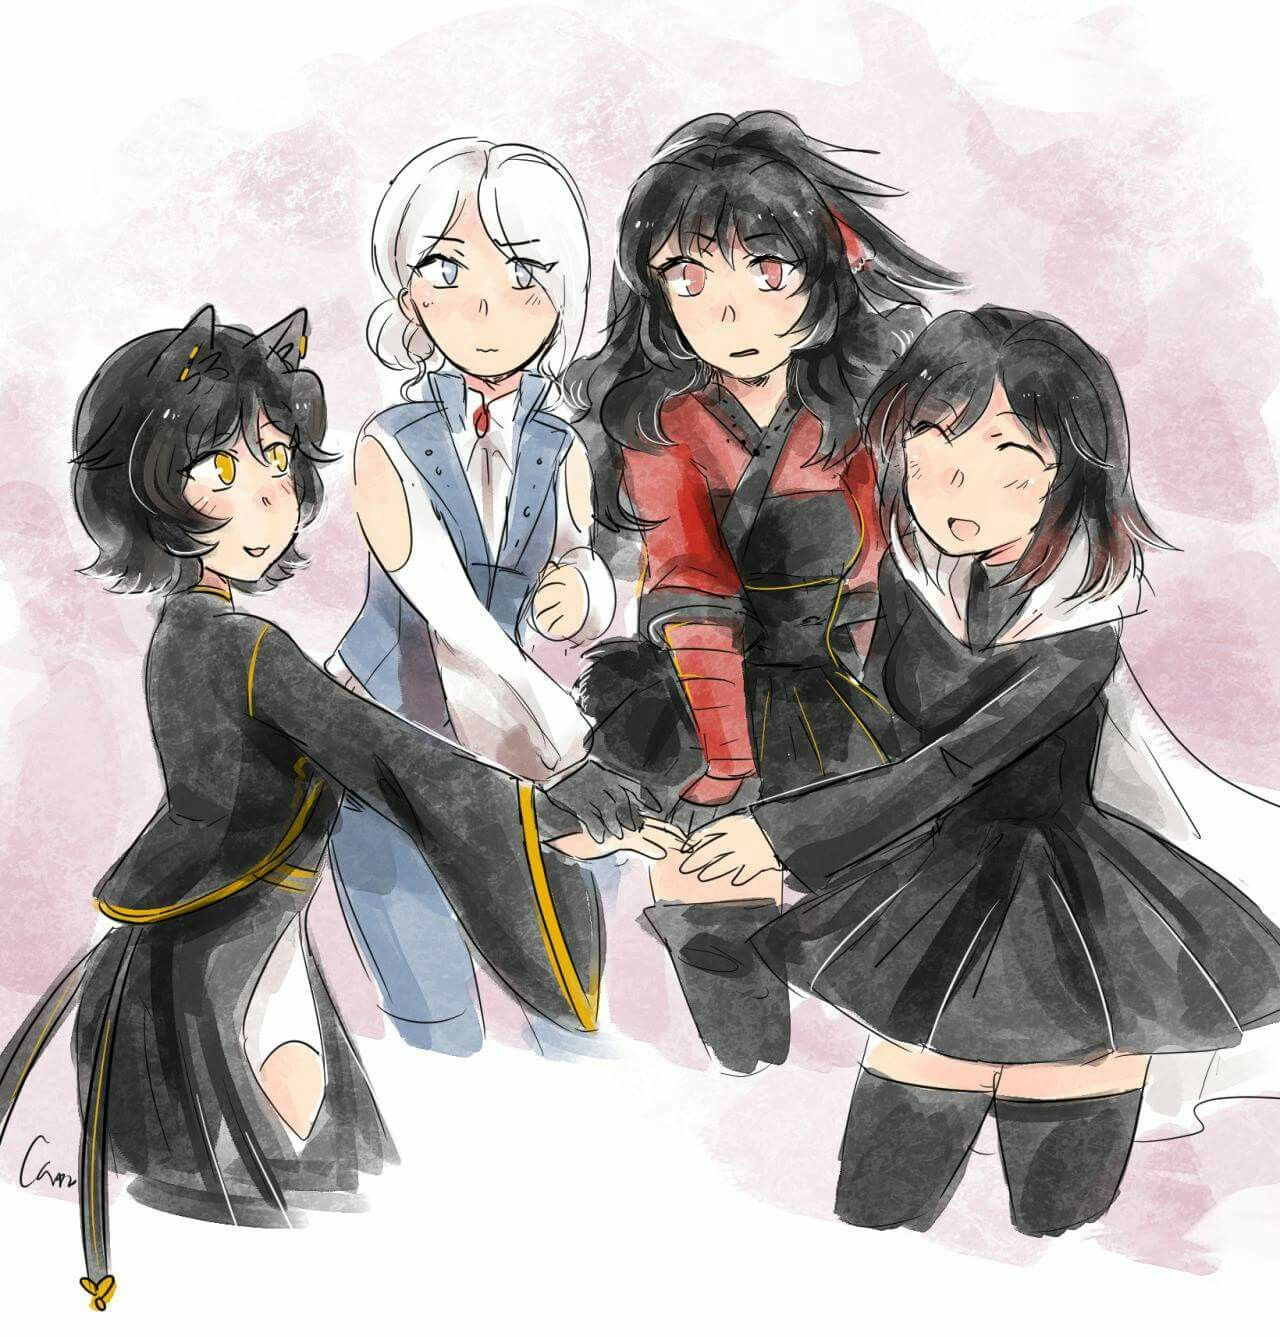 This would be so accurate if WINTER WAS ACTUALLY WEISS